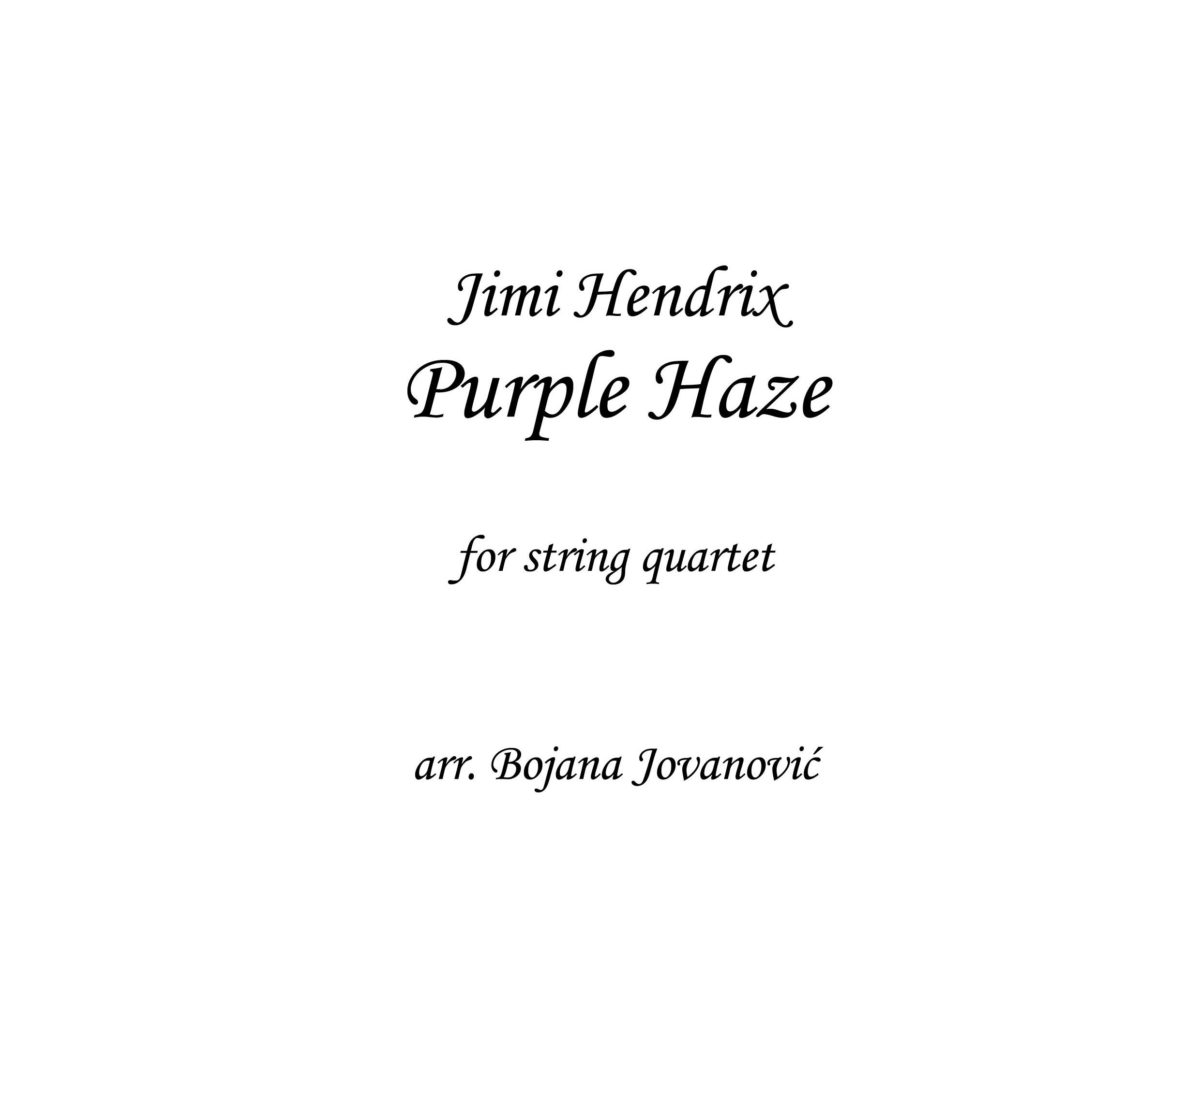 Purple Haze (Jimi Hendrix) - Sheet Music